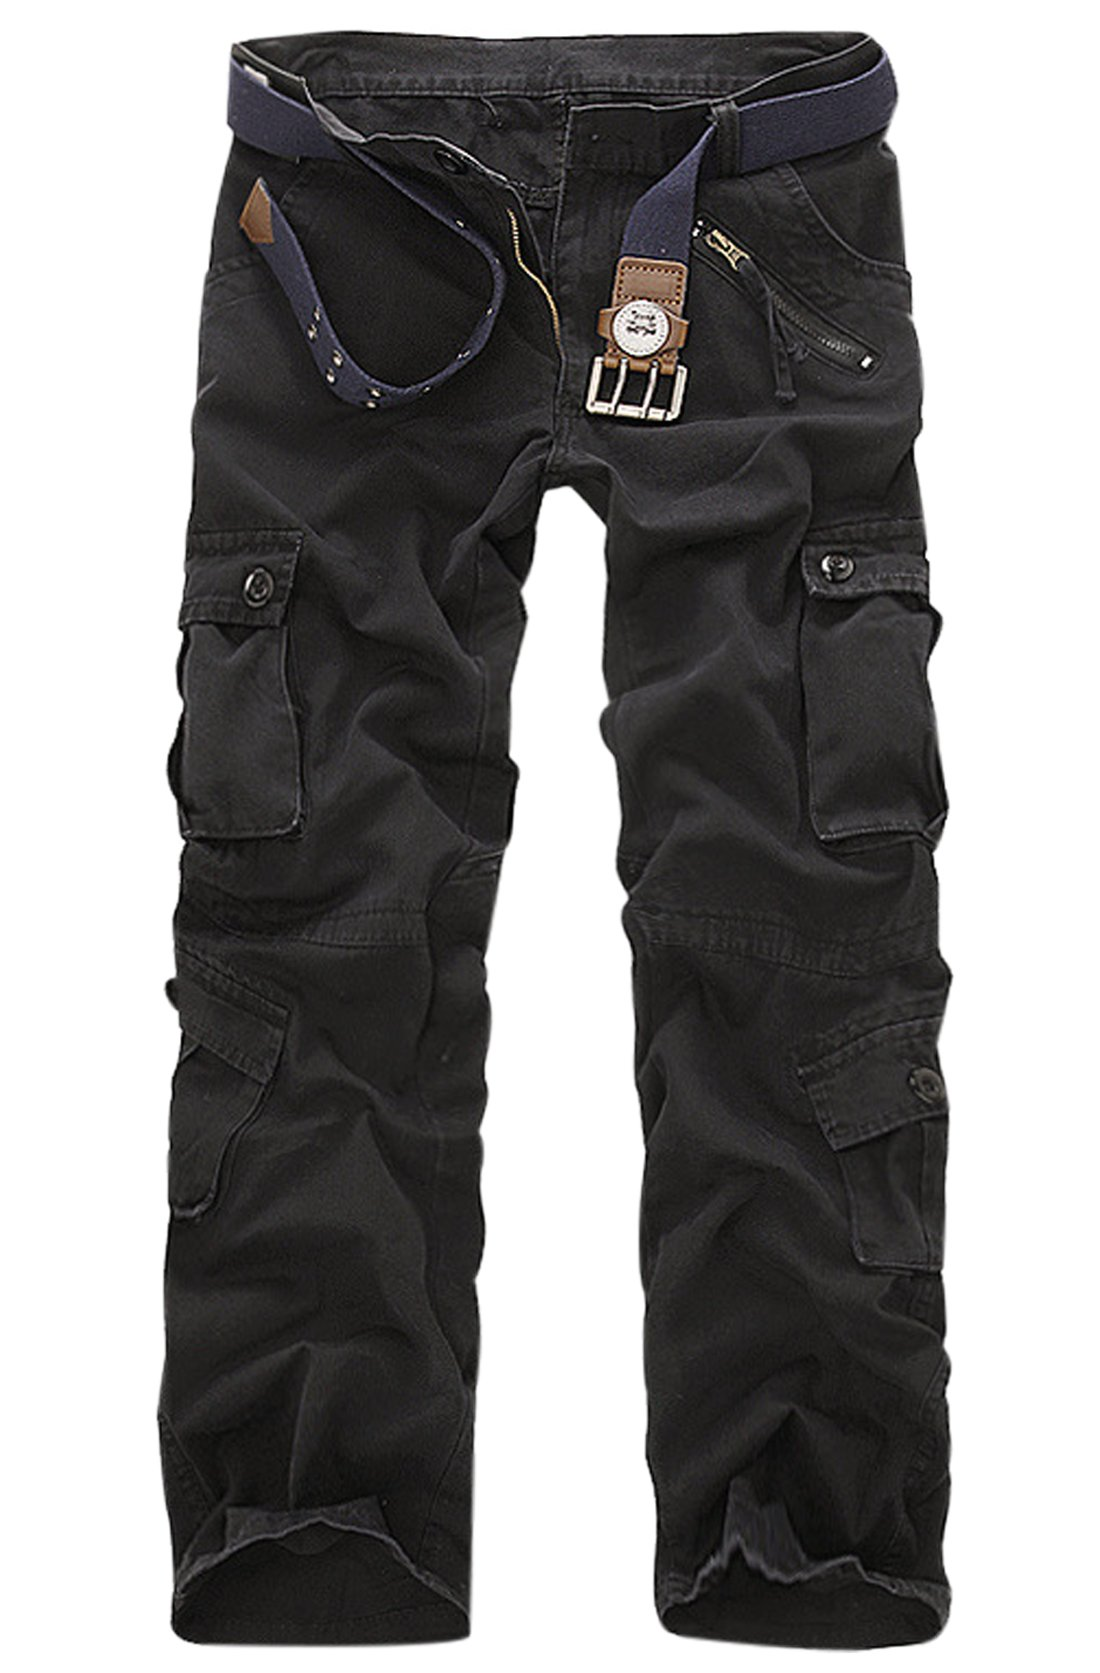 Gihuo Men's Casual Cotton Tactical Military Cargo Pants (36, Black)